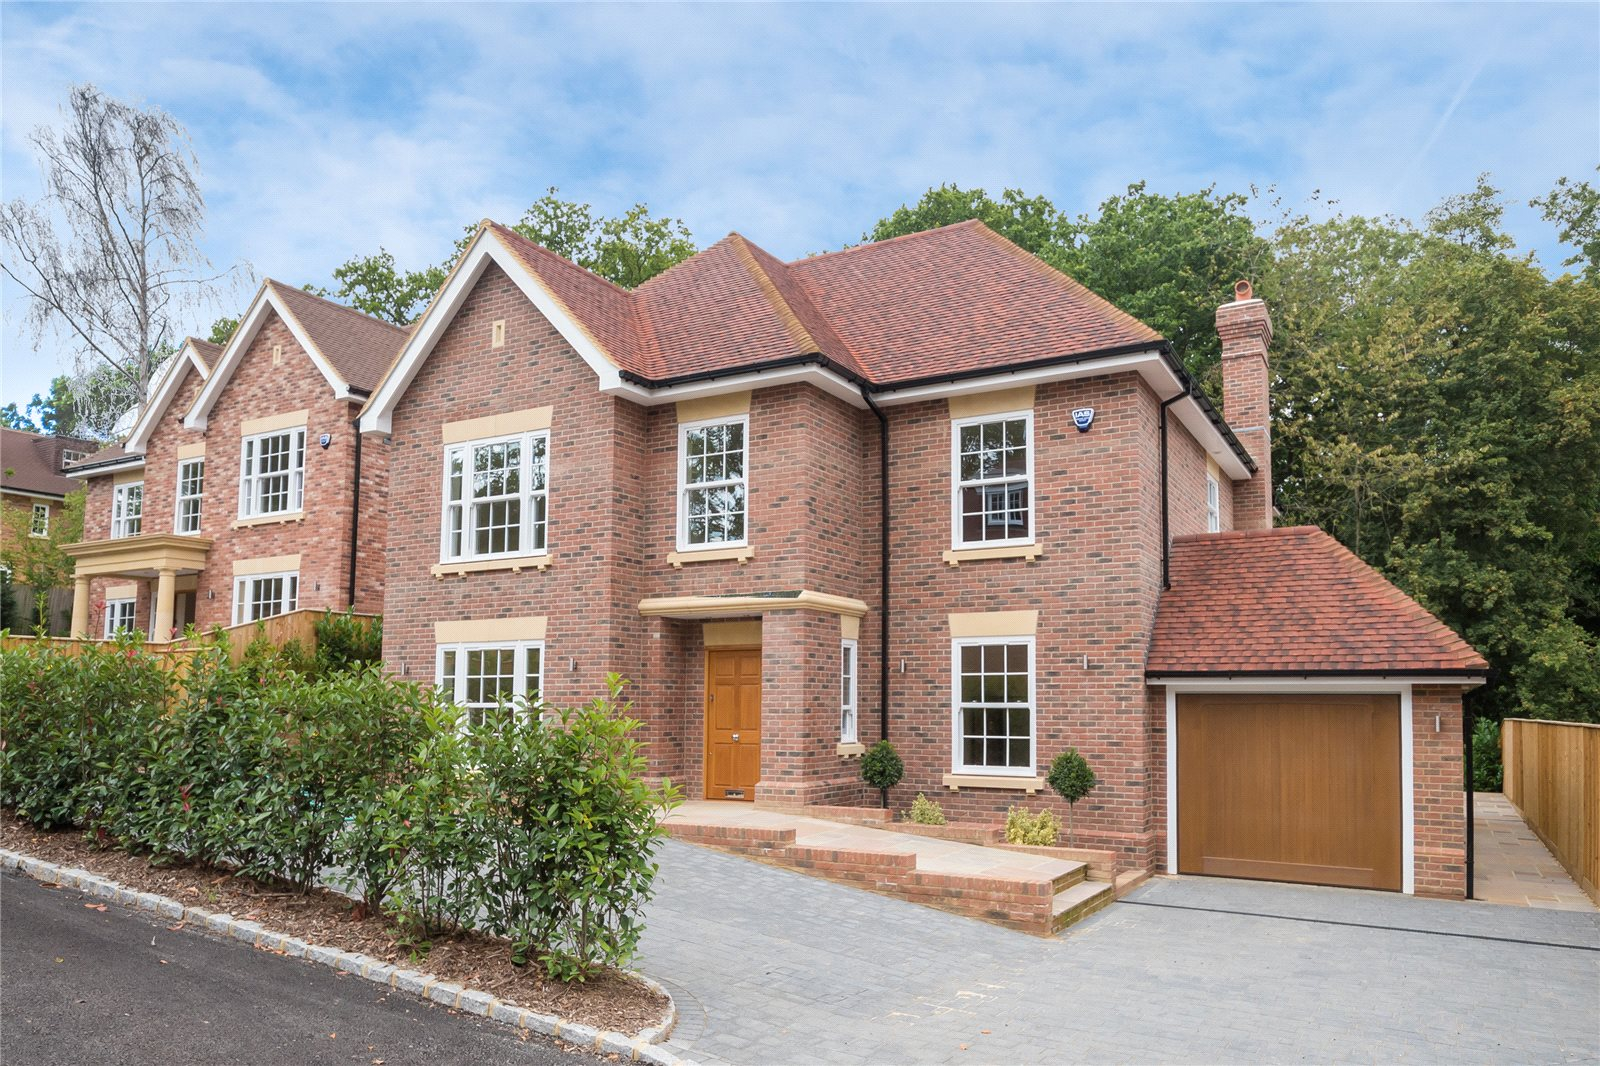 Casa Unifamiliar por un Venta en Strawberry Hill, Gerrards Cross, Buckinghamshire, SL9 Gerrards Cross, Inglaterra